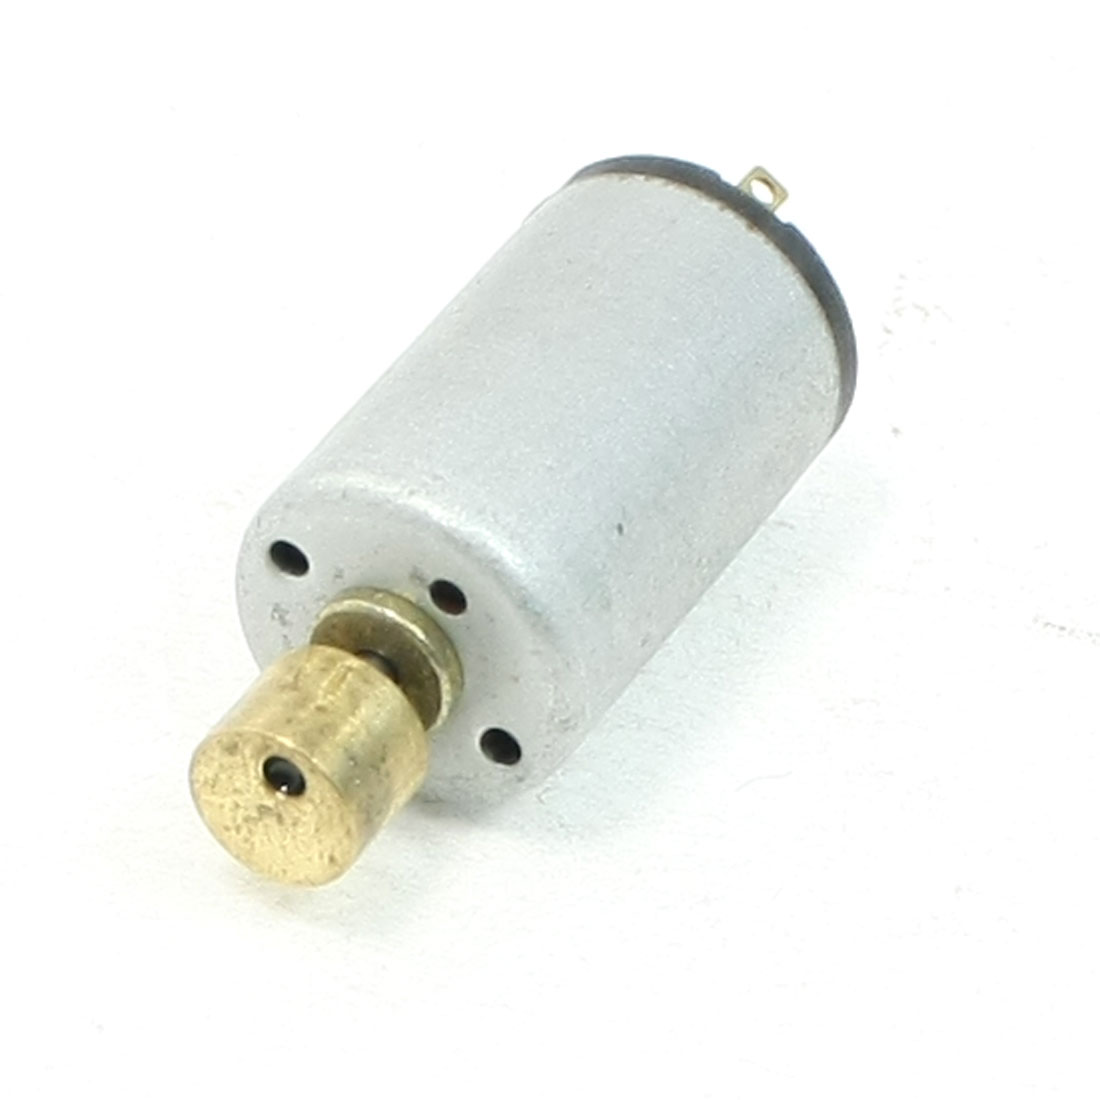 DC 3V 0.2A 8000RPM Mini Vibration Motor for CD DVD Players